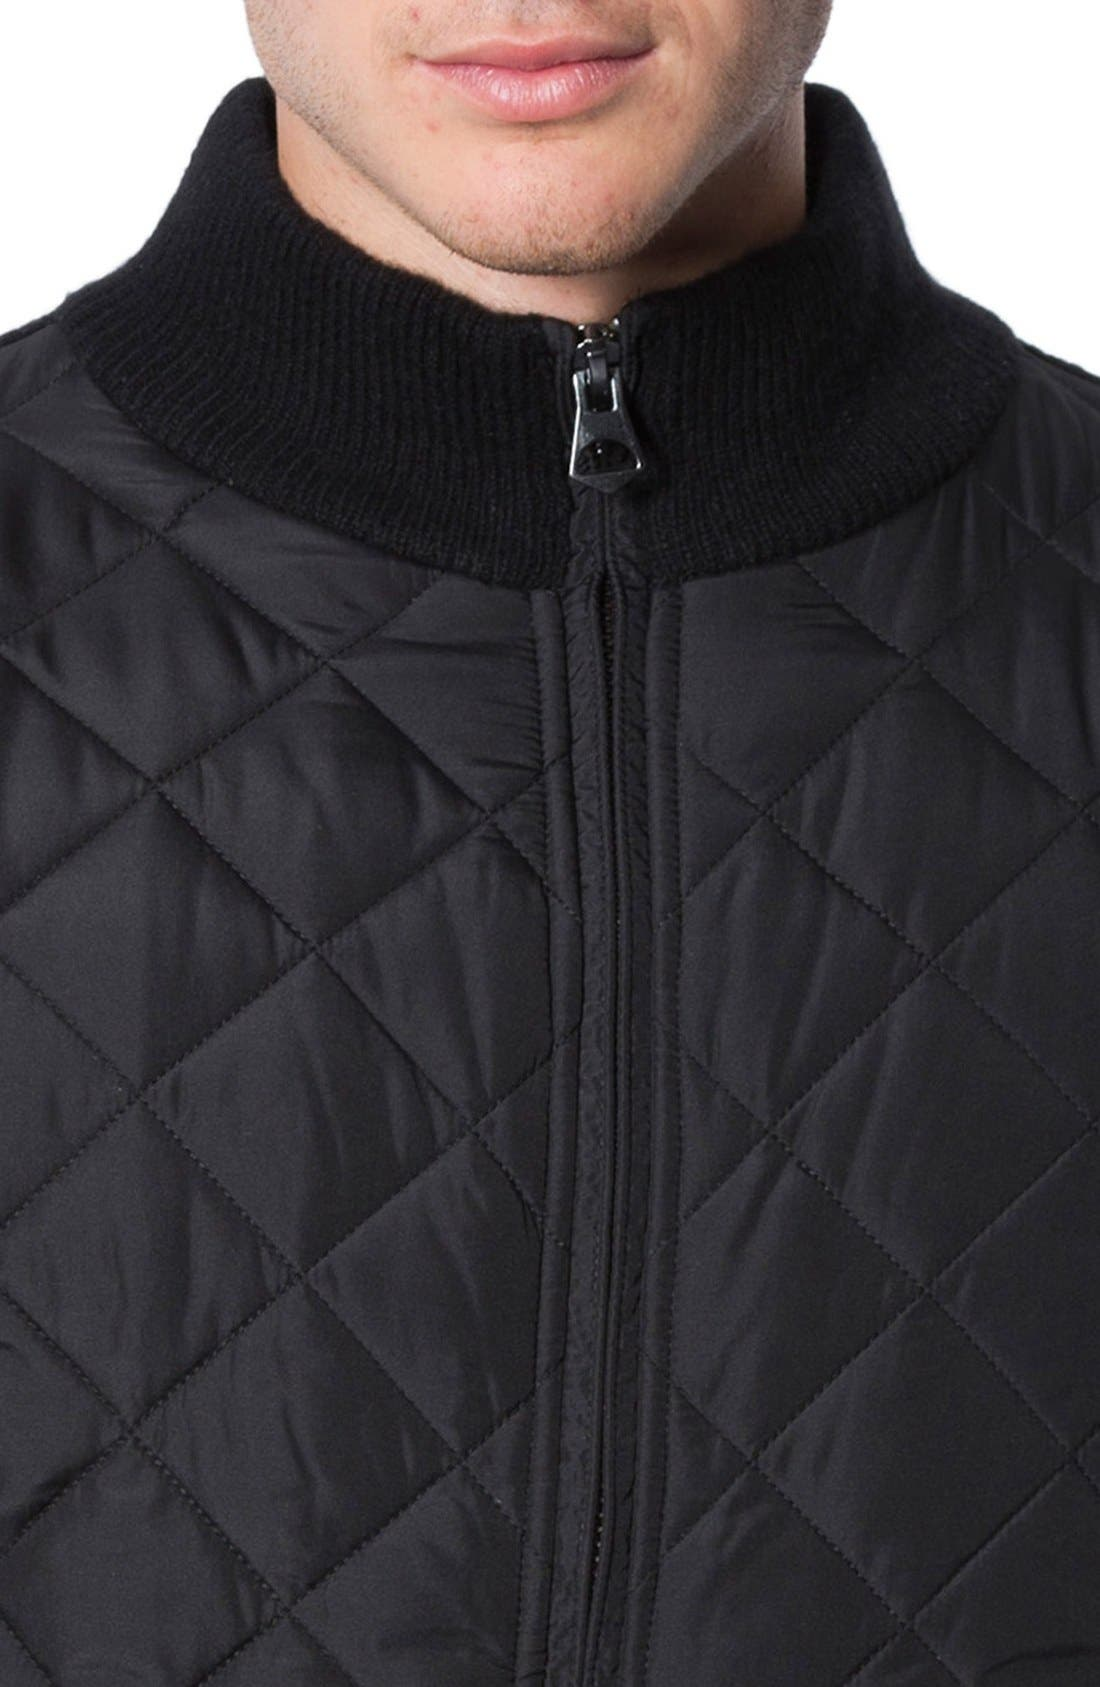 'Gatti' Quilted Panel Lambswool Knit Jacket,                             Alternate thumbnail 3, color,                             001